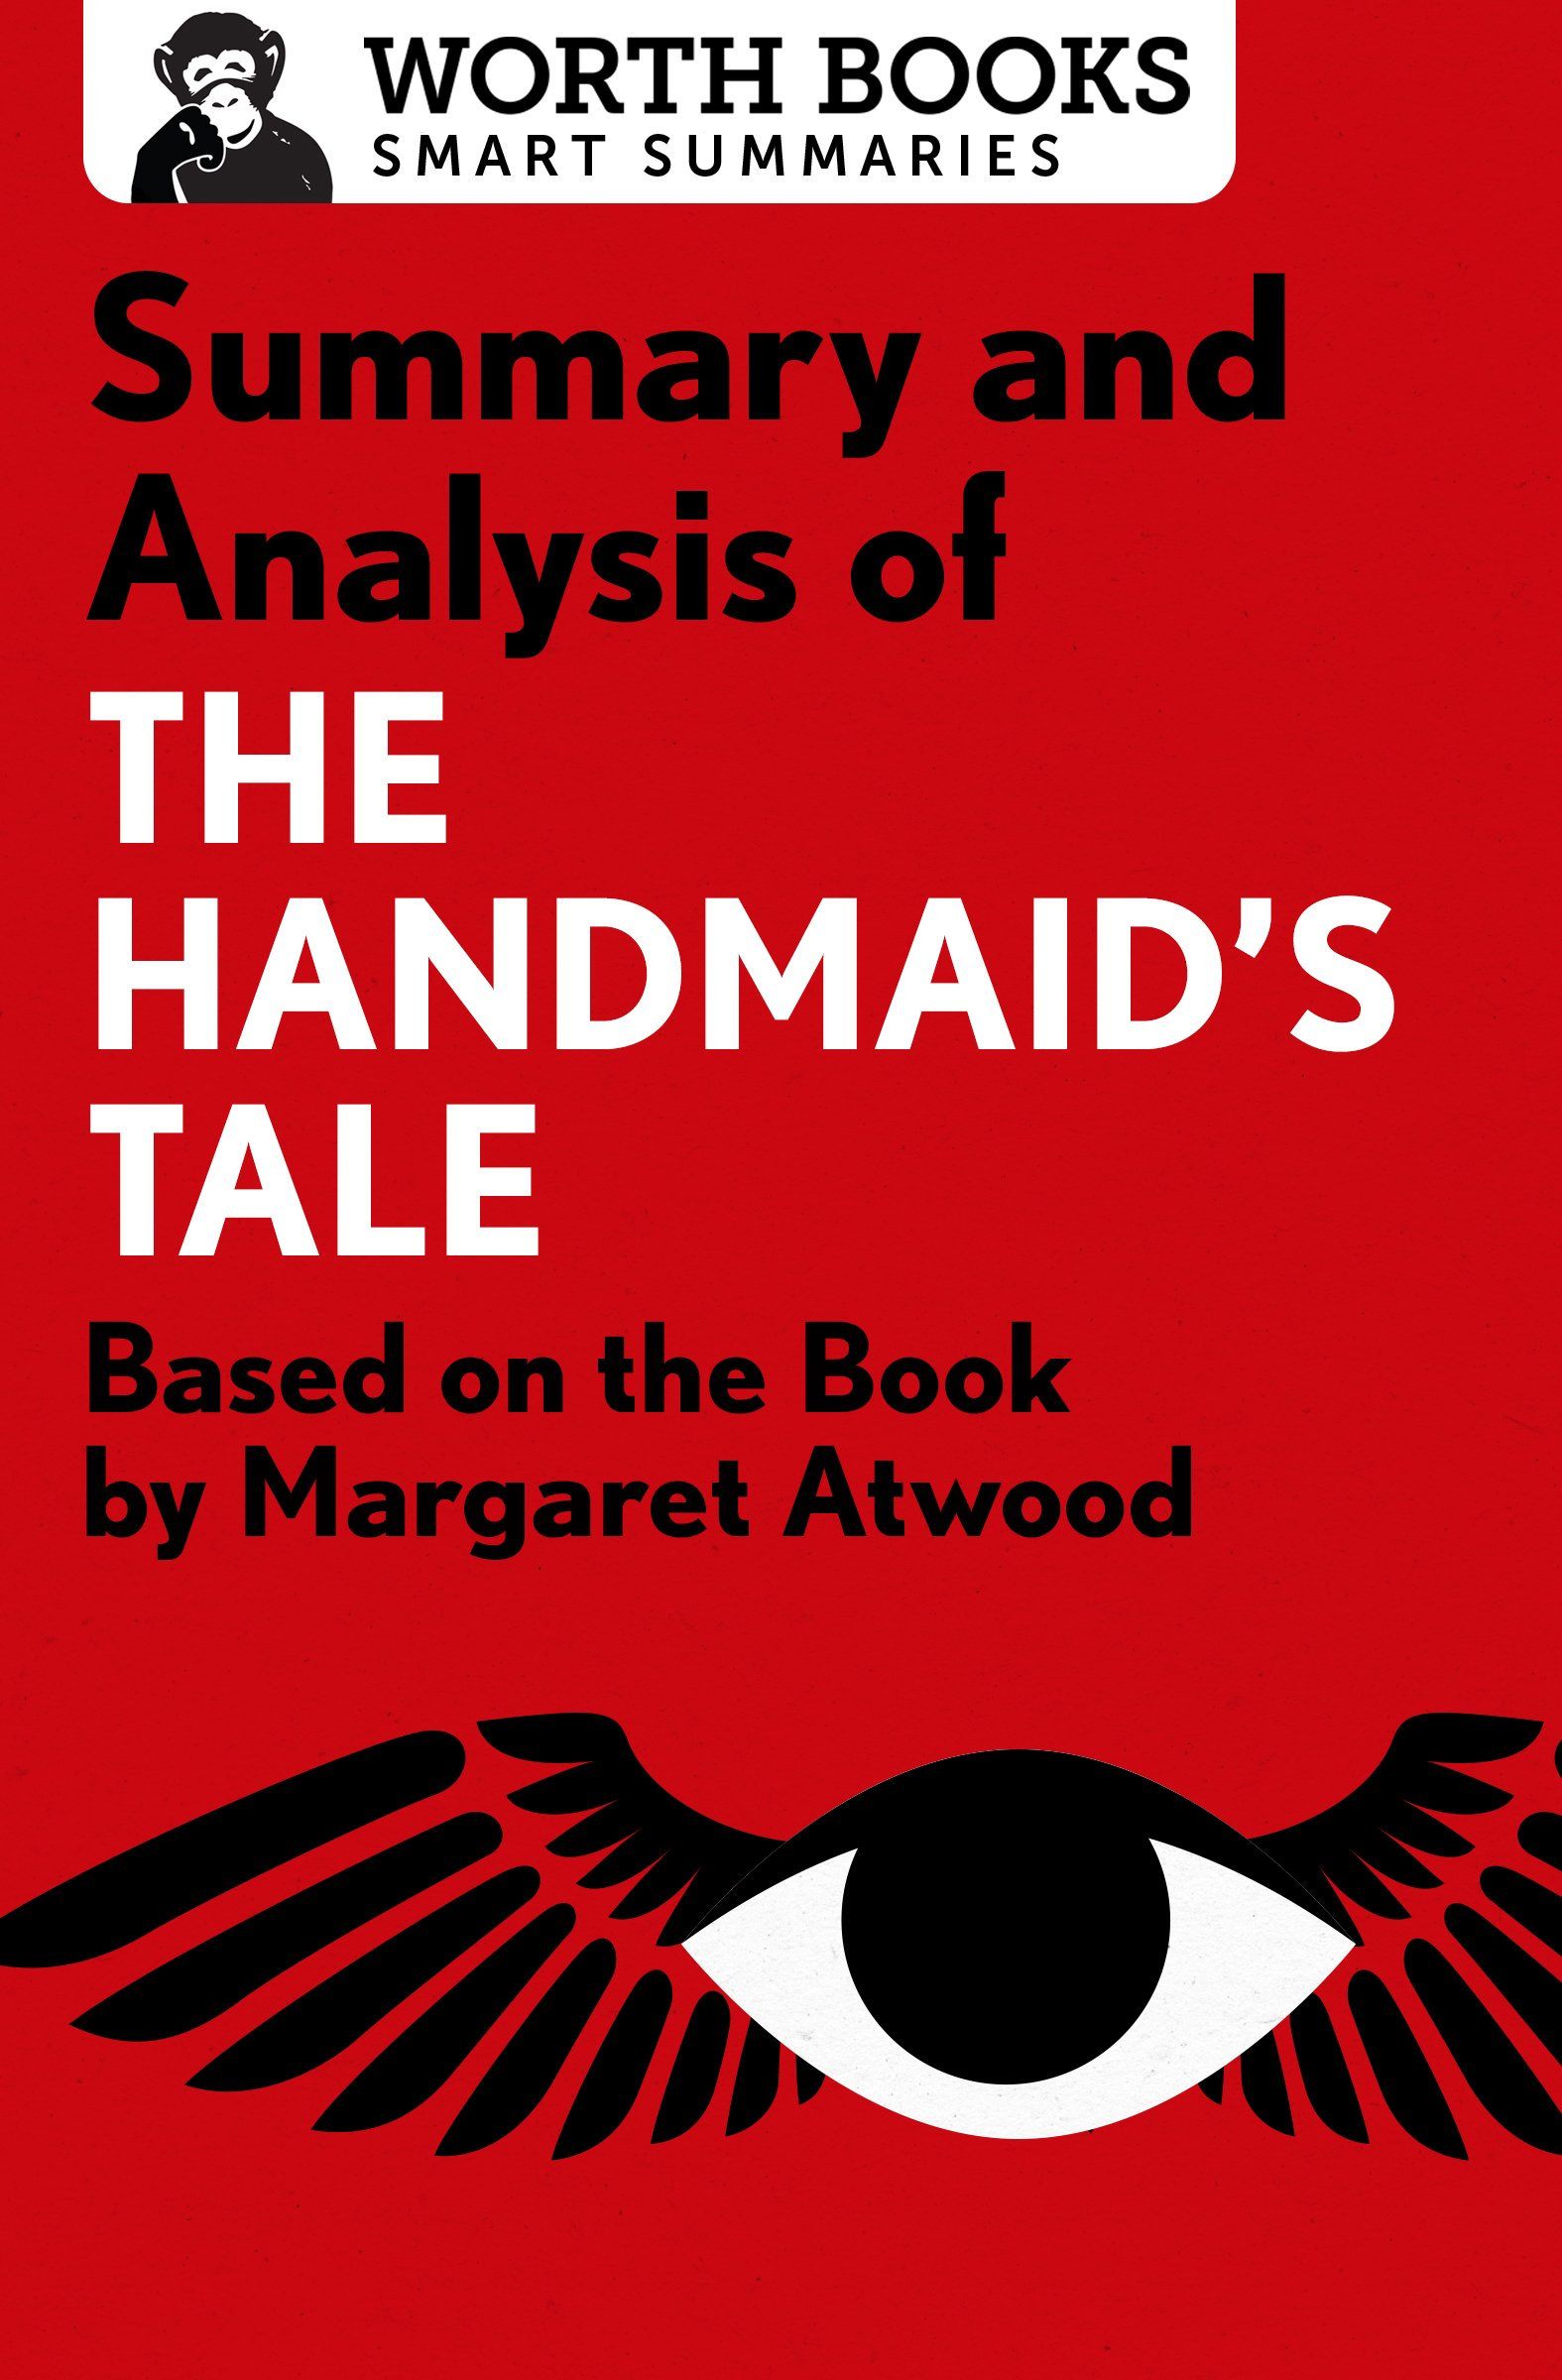 Amazon summary and analysis of the handmaids tale based on amazon summary and analysis of the handmaids tale based on the book by margaret atwood smart summaries 9781504046602 worth books books biocorpaavc Image collections